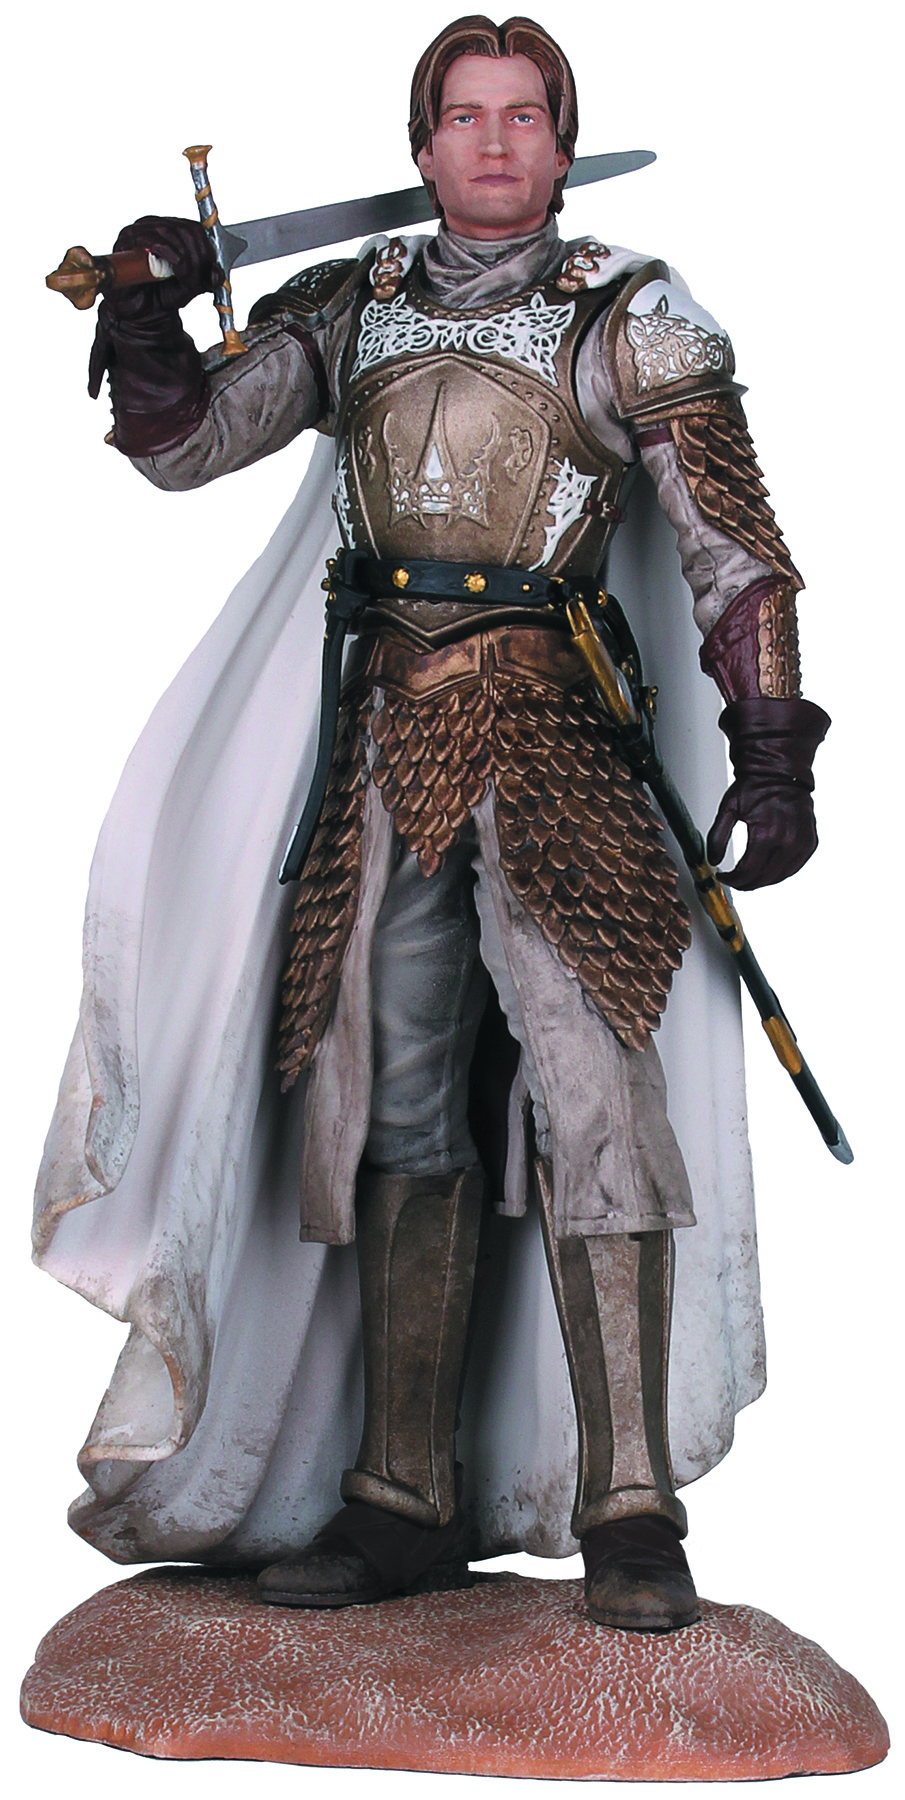 GAME OF THRONES FIGURE JAIME LANNISTER